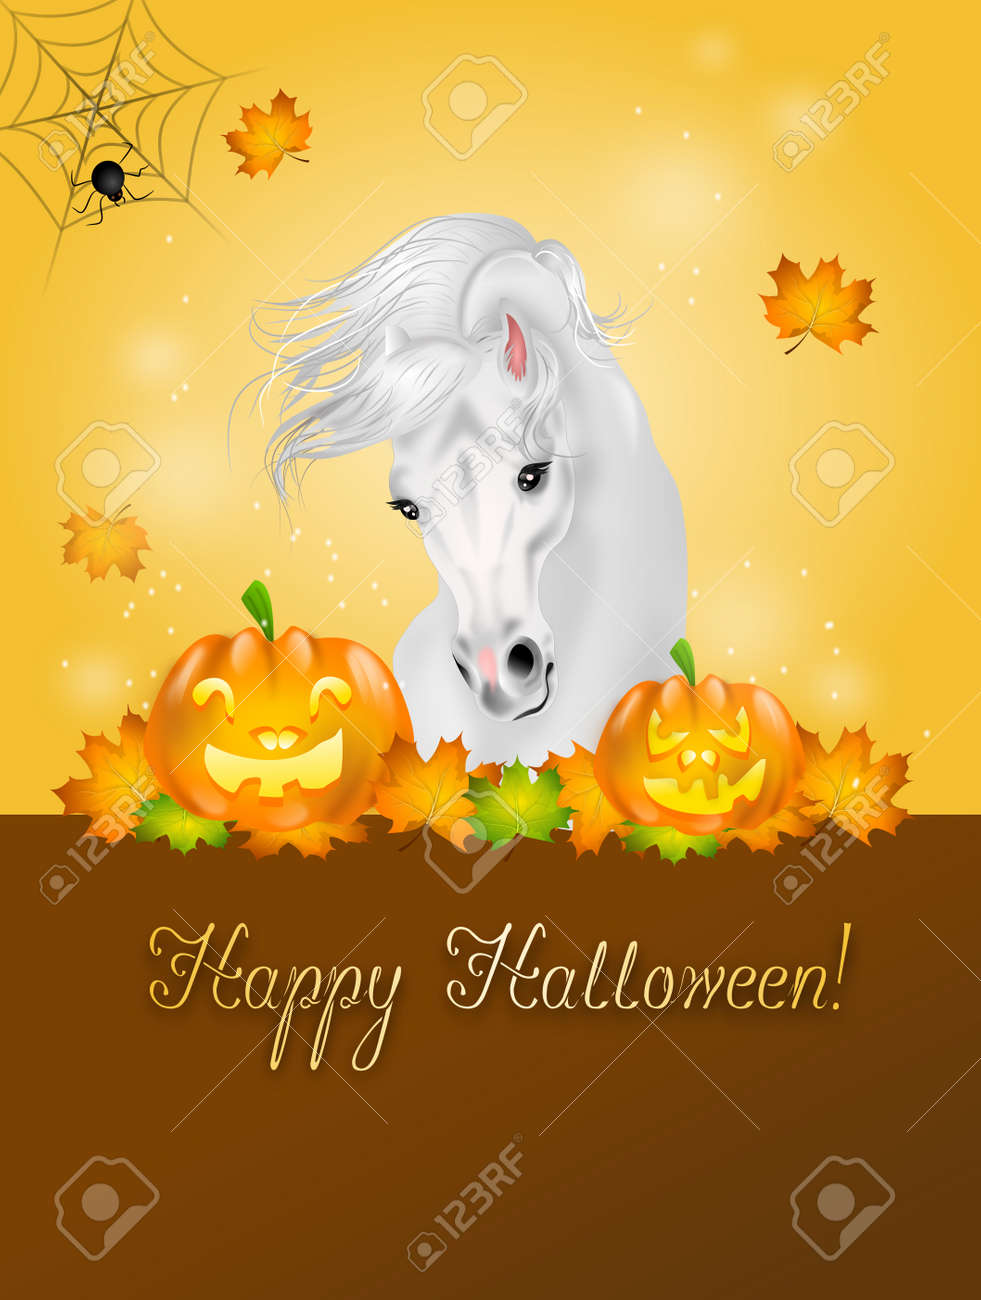 Fashion week Halloween Happy horse pictures for girls